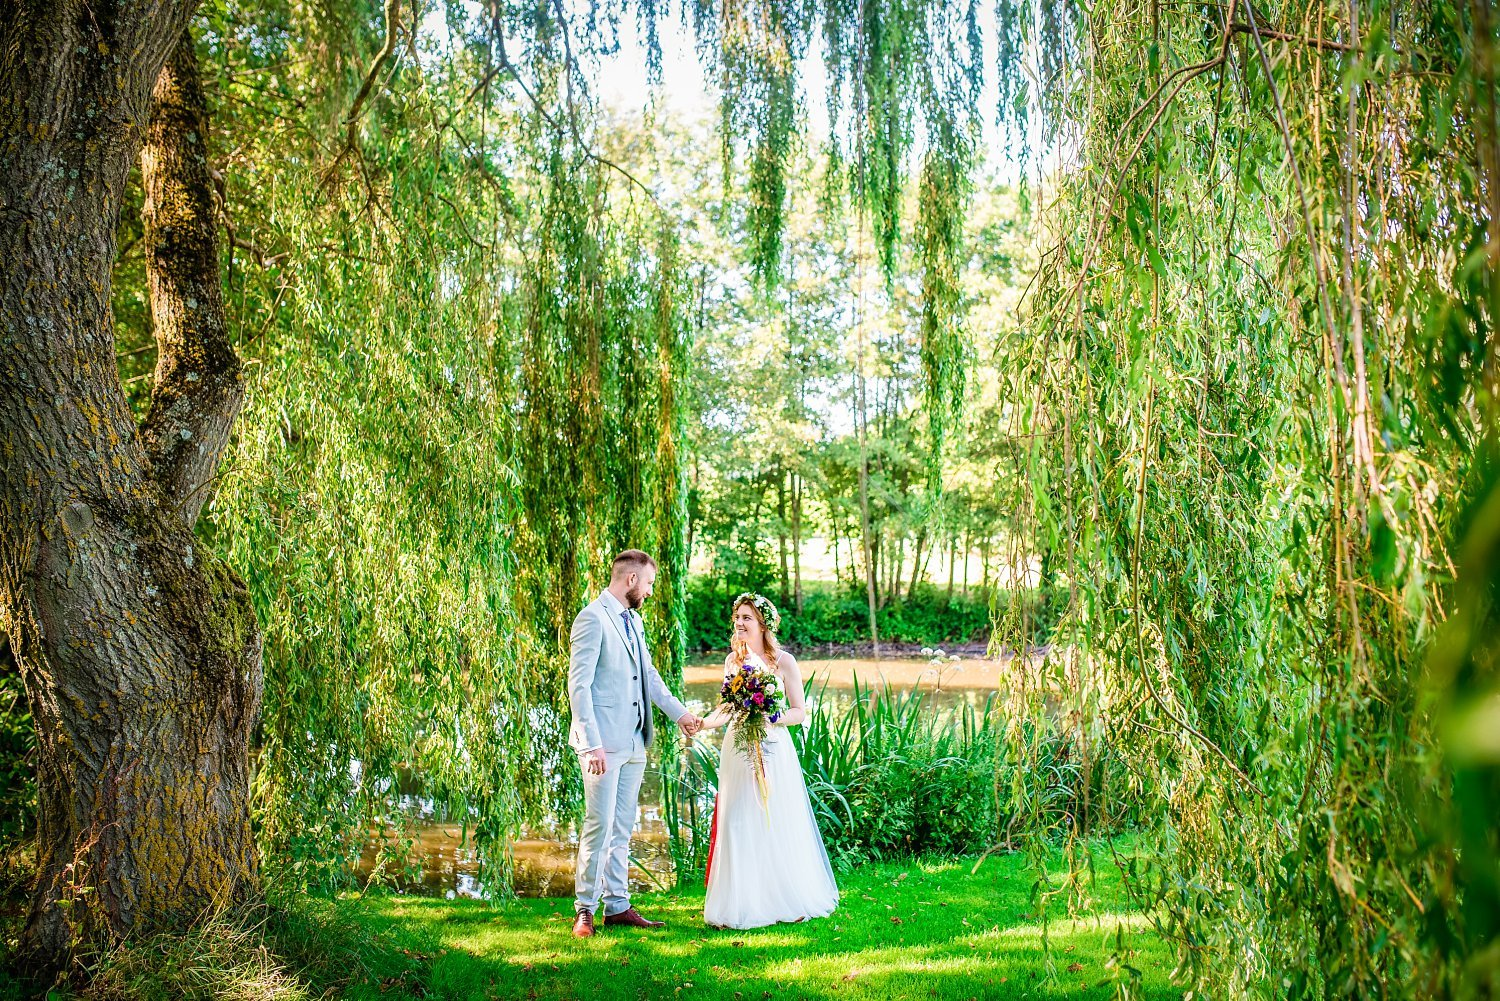 Farnham Wedding Photographer - husband and wife under willow tree. they are holding hands